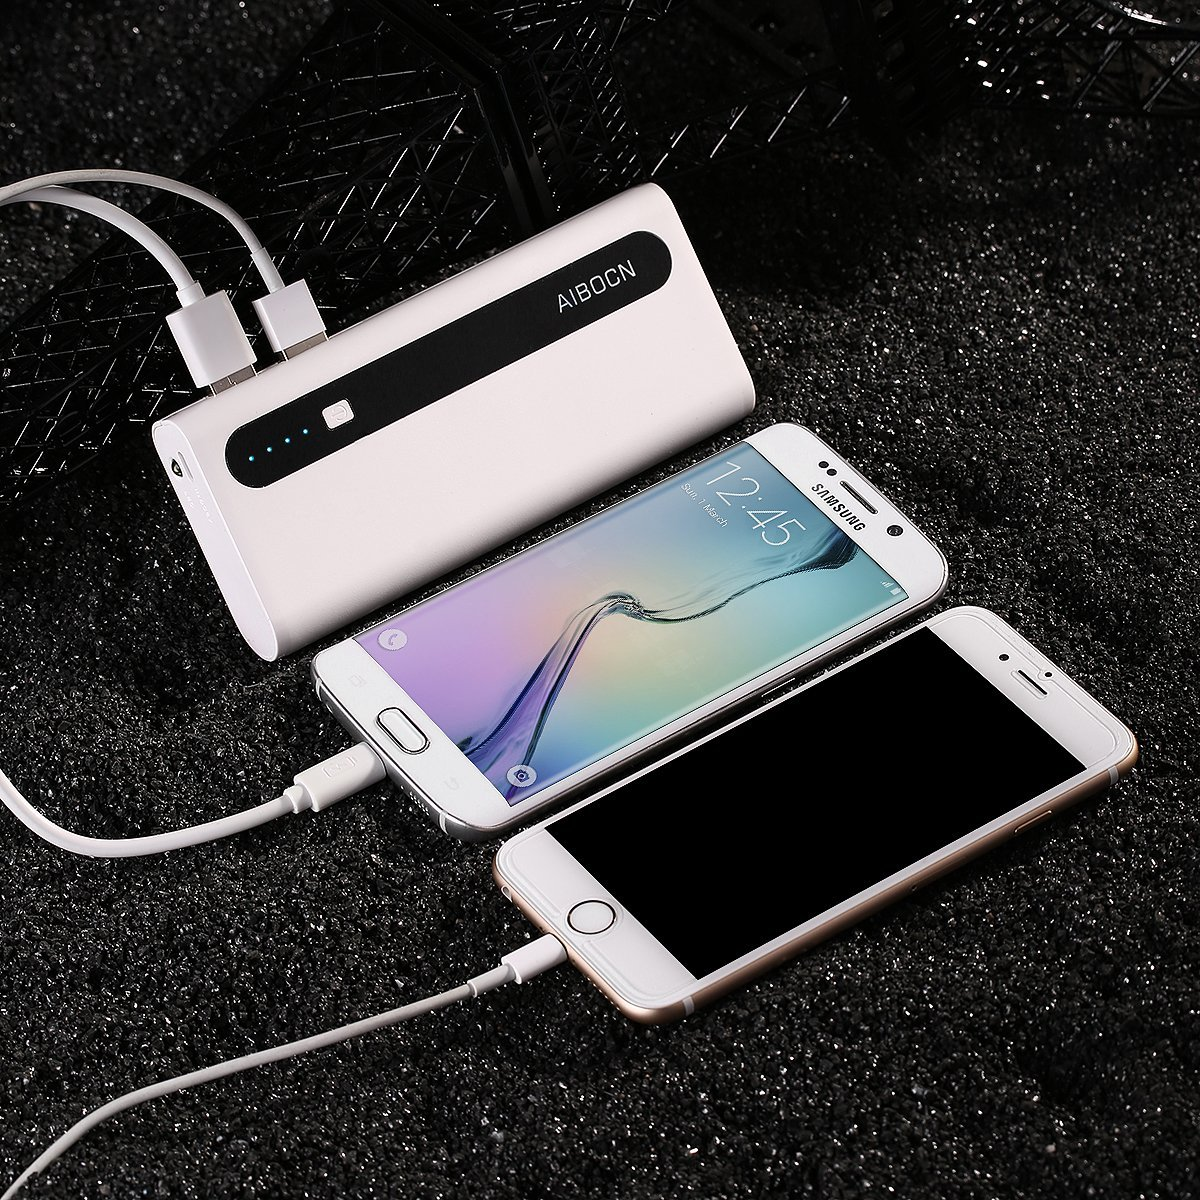 best 10000 mah portable cell phone battery charger 2018. Black Bedroom Furniture Sets. Home Design Ideas